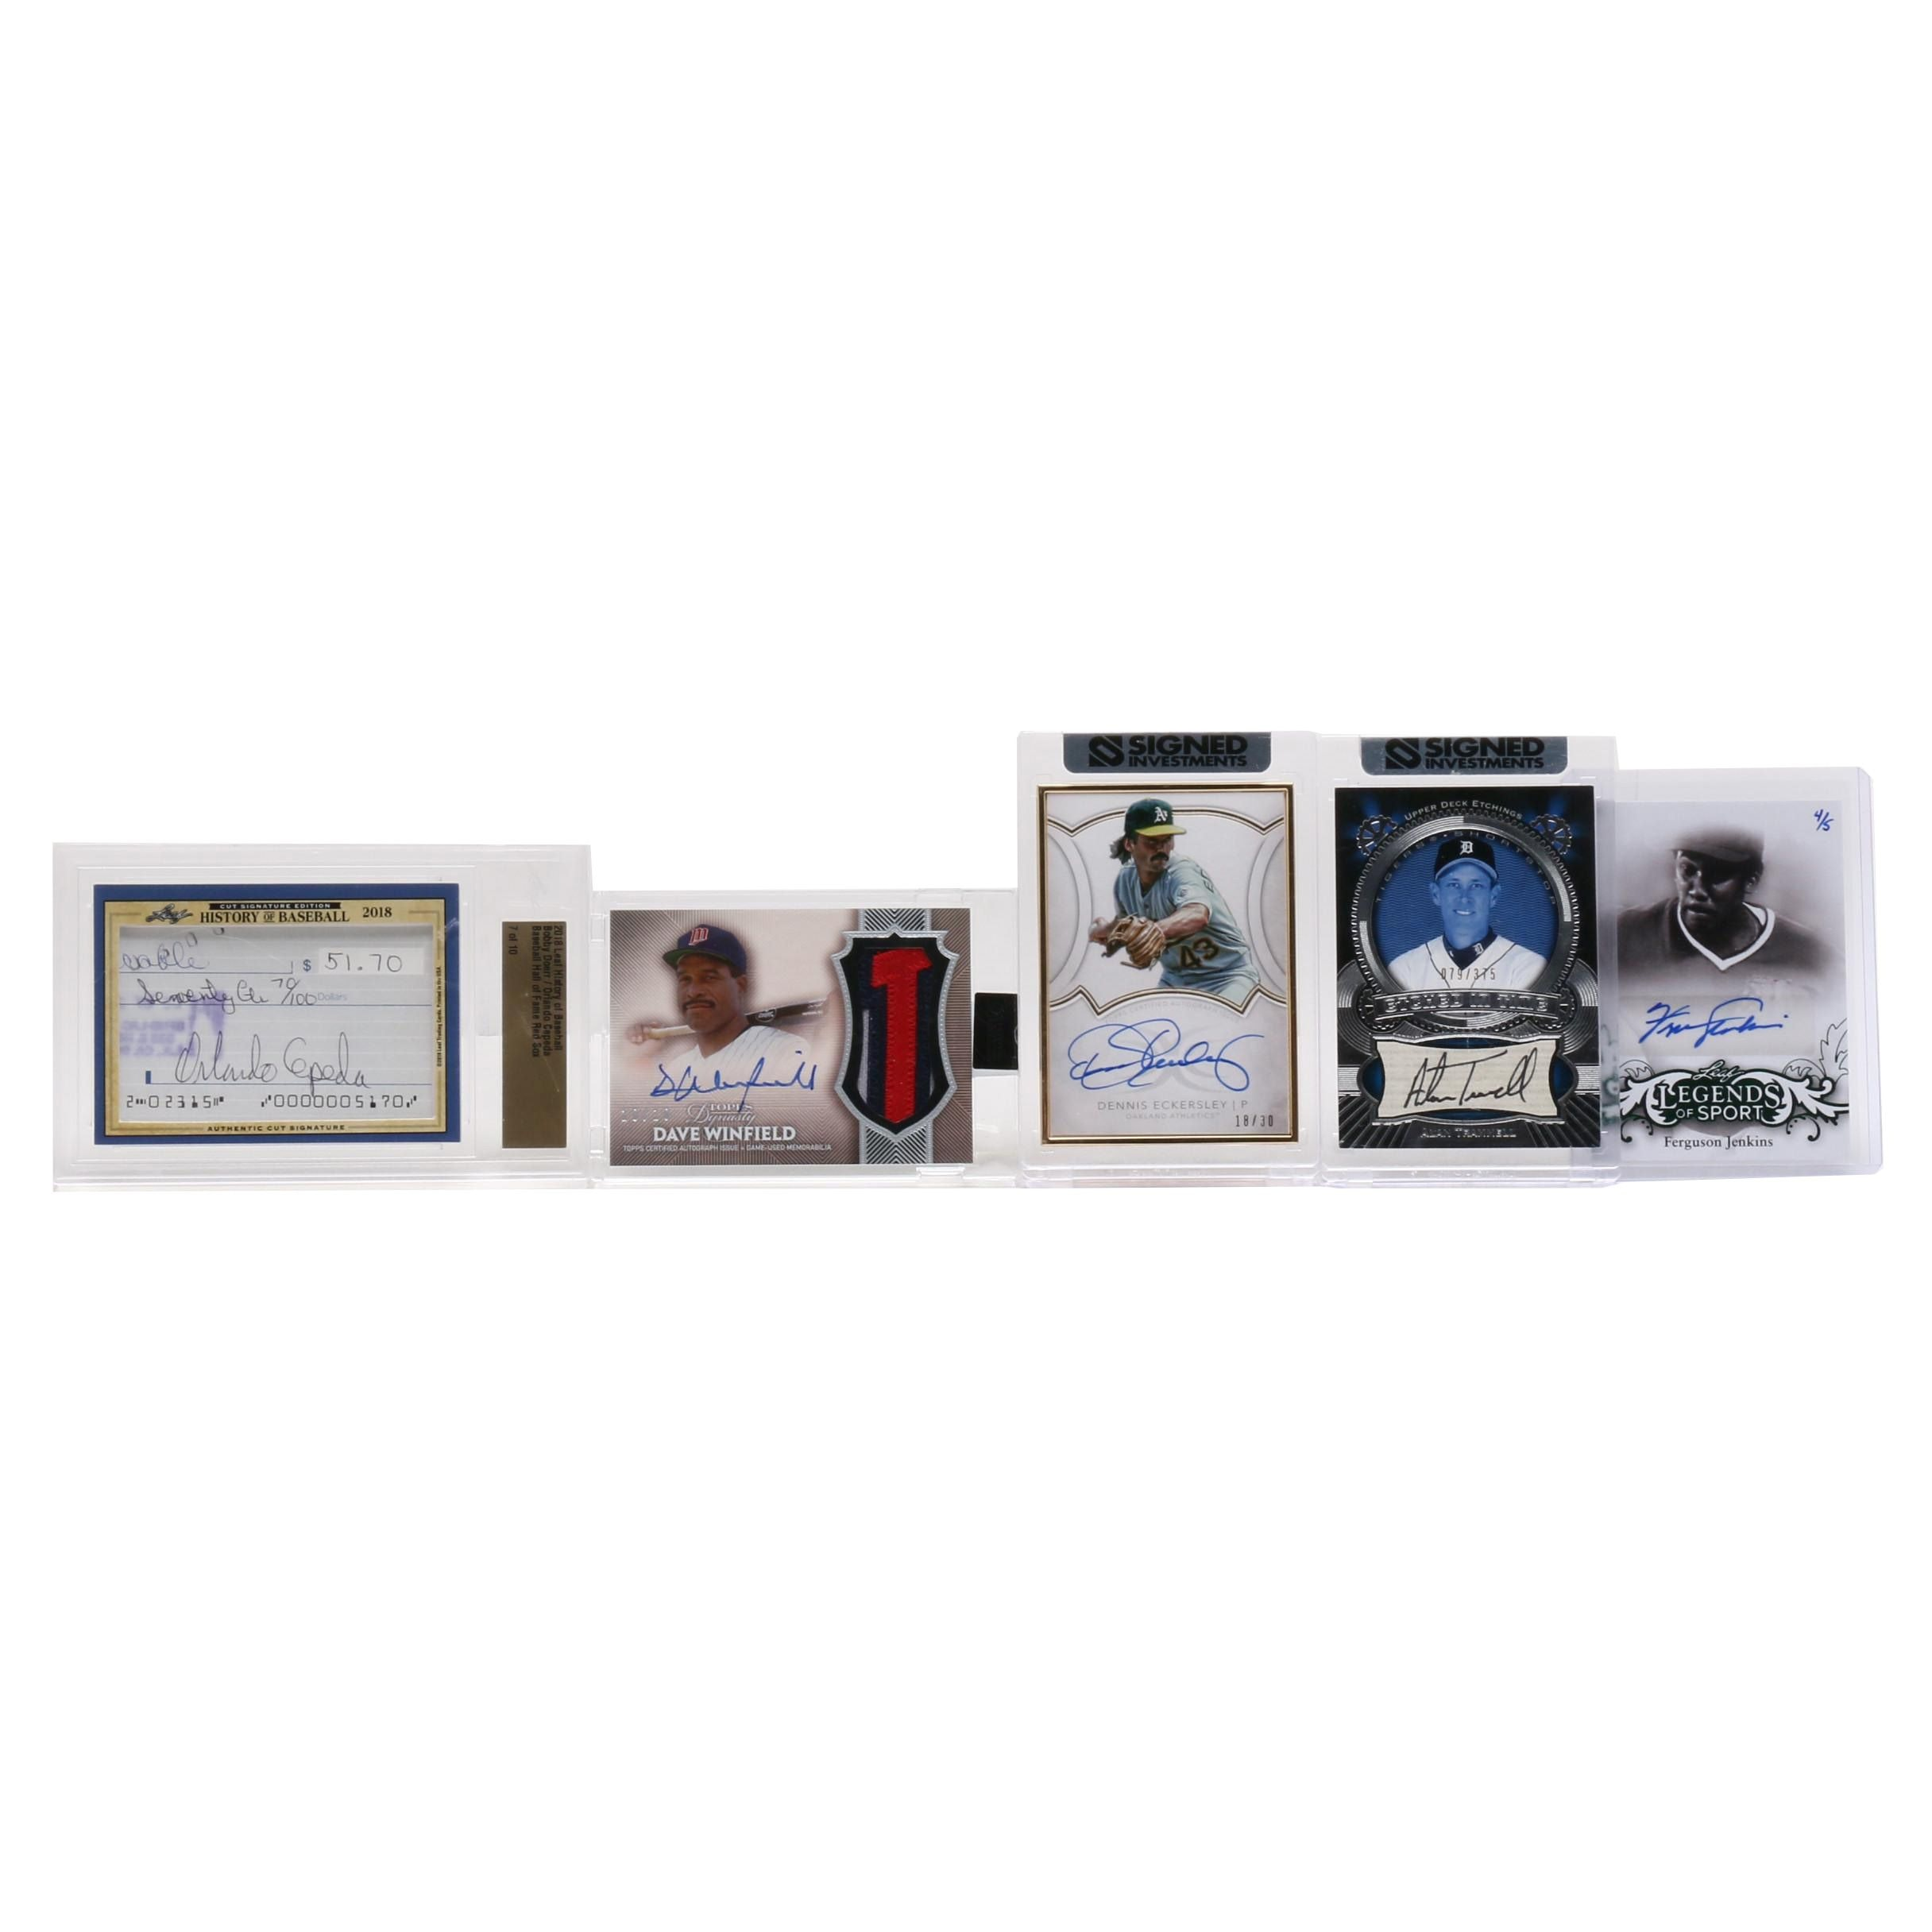 Certified Autographed Baseball Cards with Dave Winfield